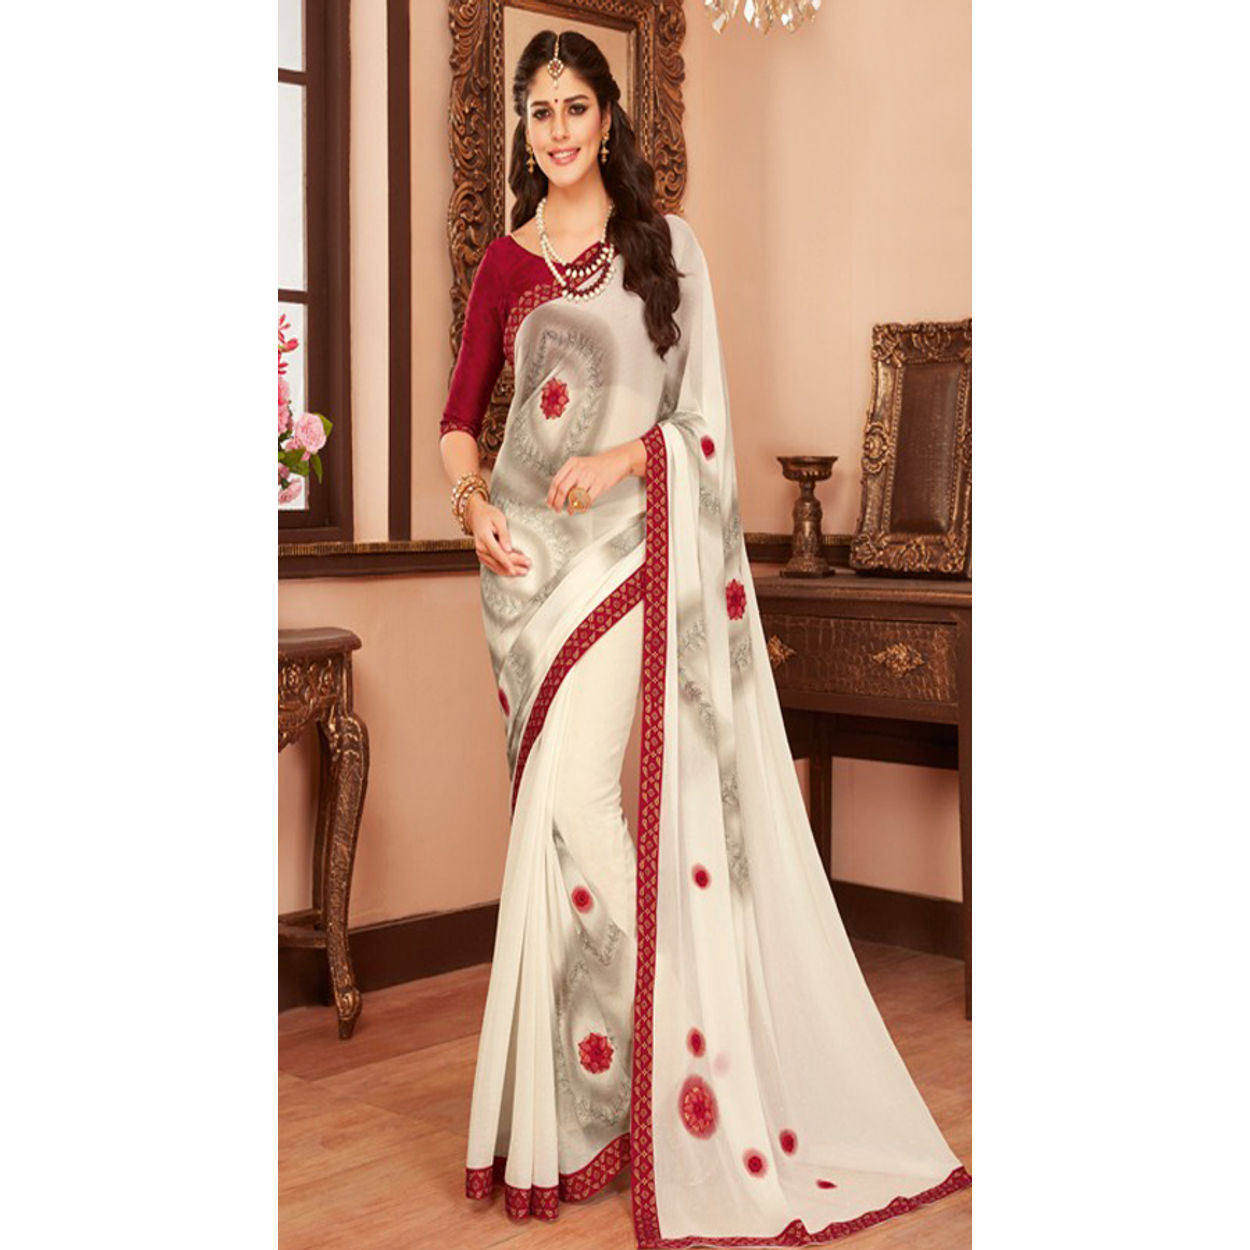 e0aaebafc2 Gokedia Designer Red And White Saree With Floral Embroidery | Pa1d ...